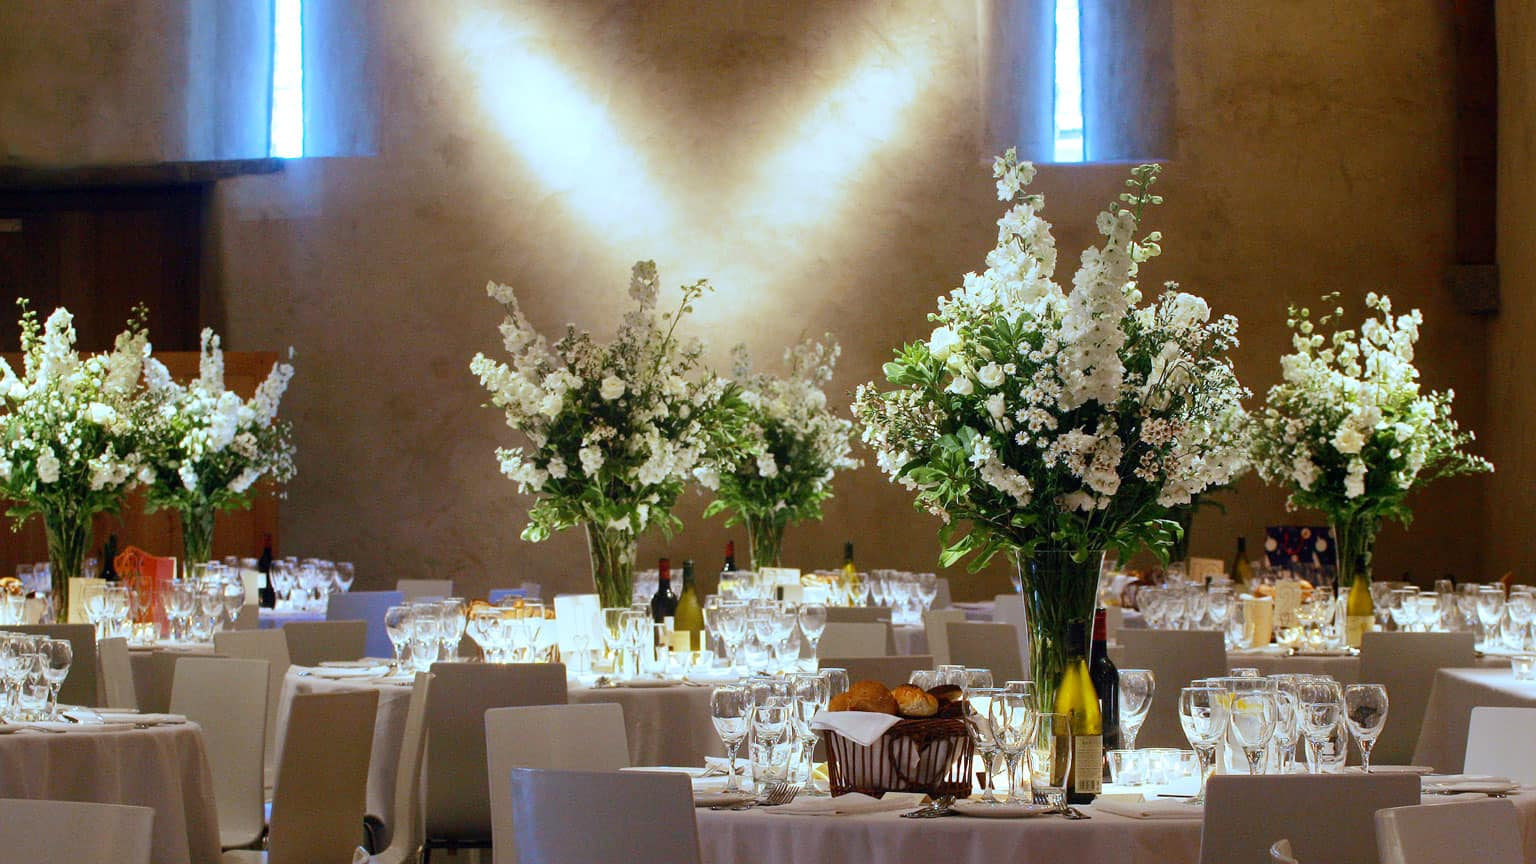 Wedding flowers wedding decorations the great barn devon wedding flowers the great barn debon wedding venue devon devon wedding venue junglespirit Gallery